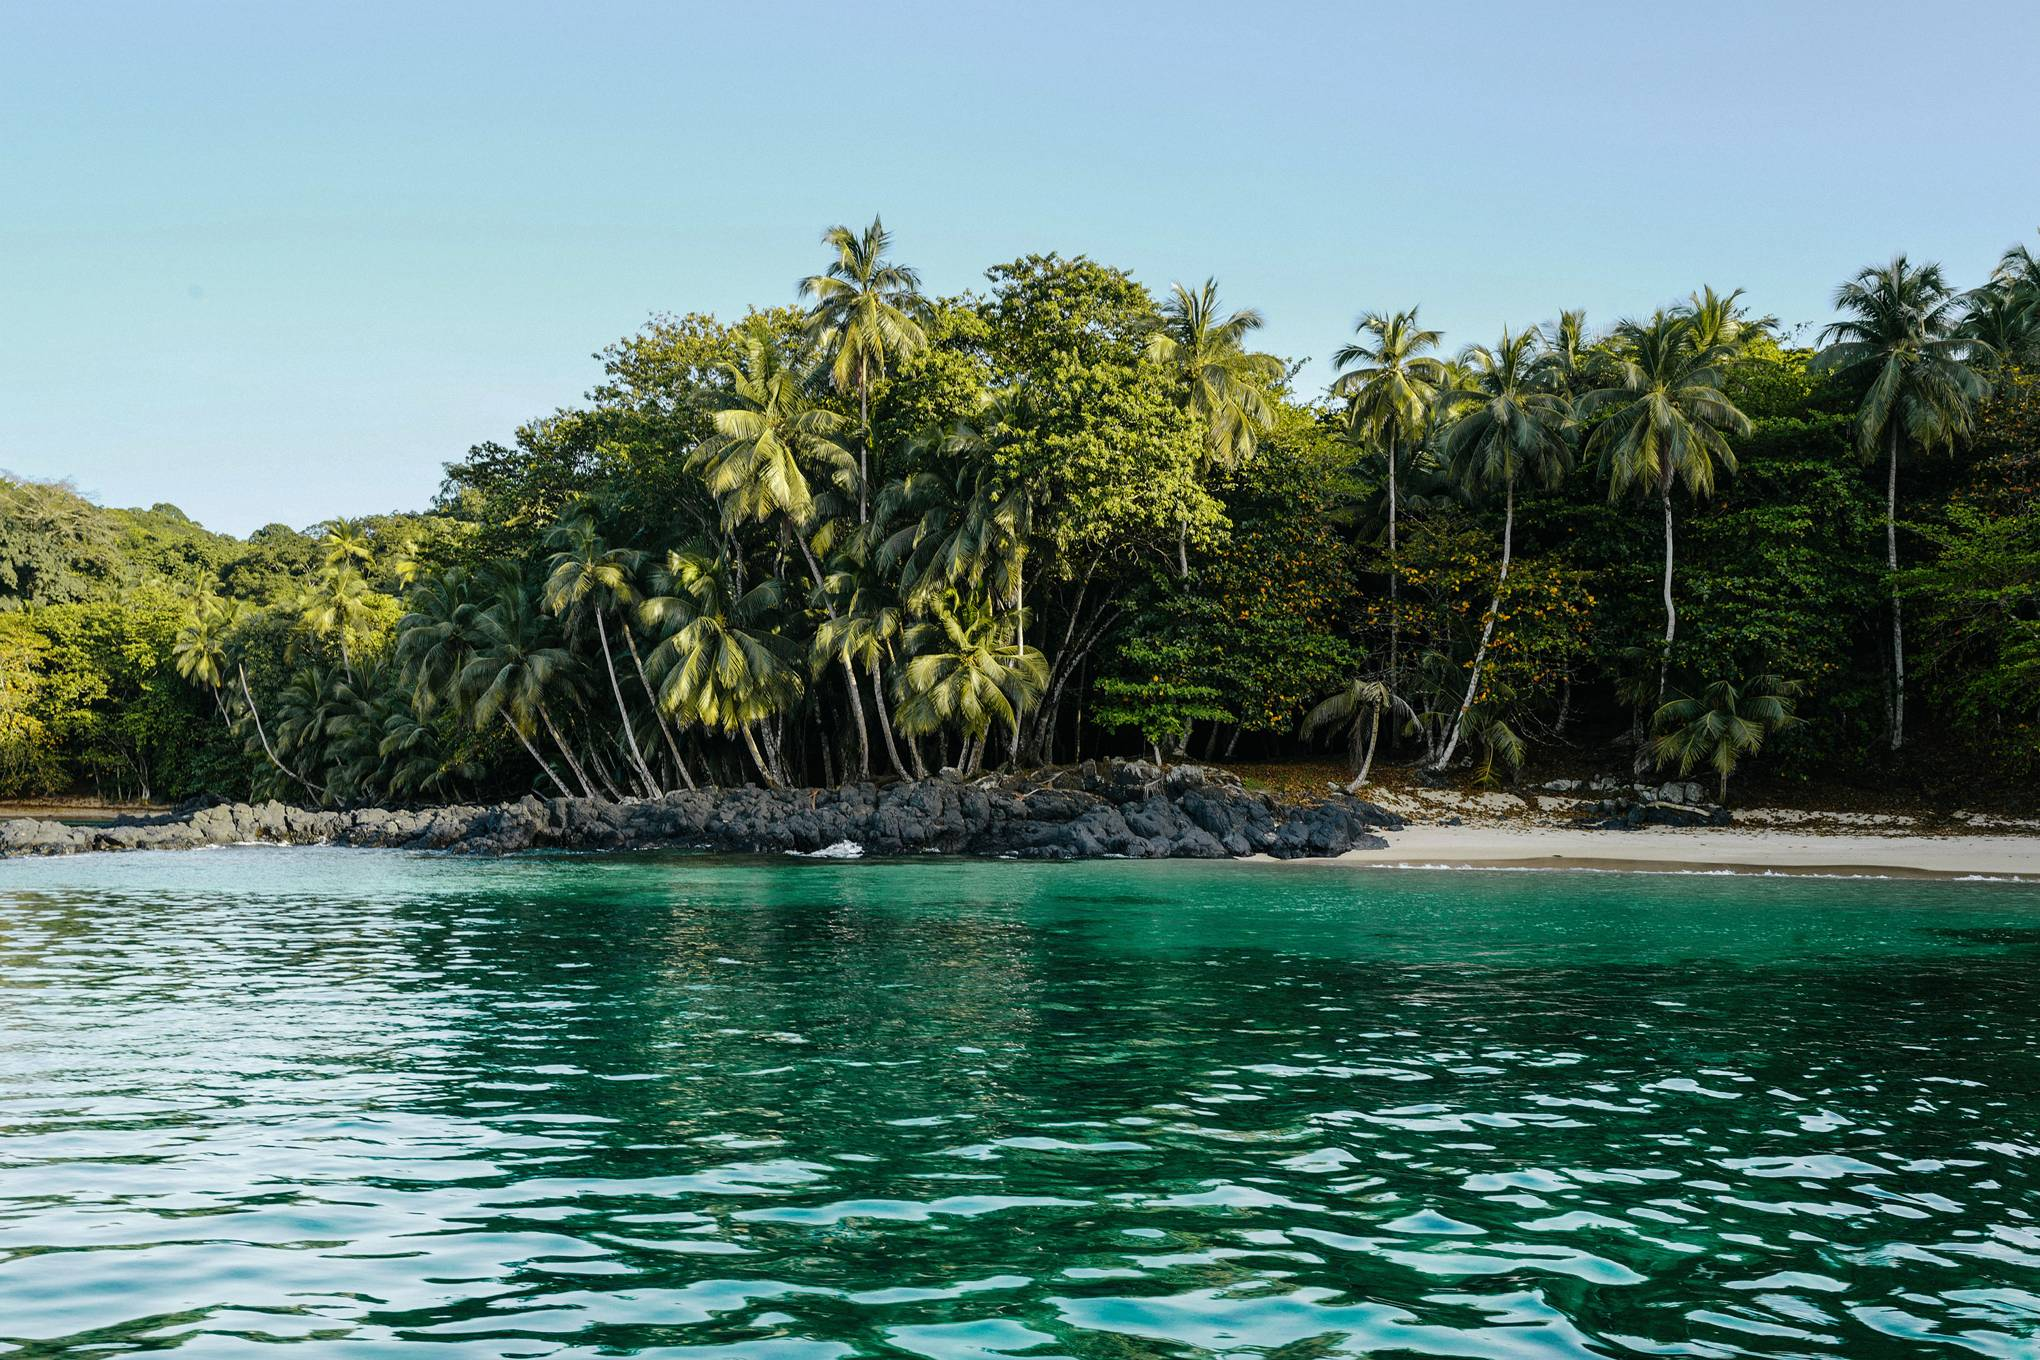 Be first to go: Africa's little-known tropical islands